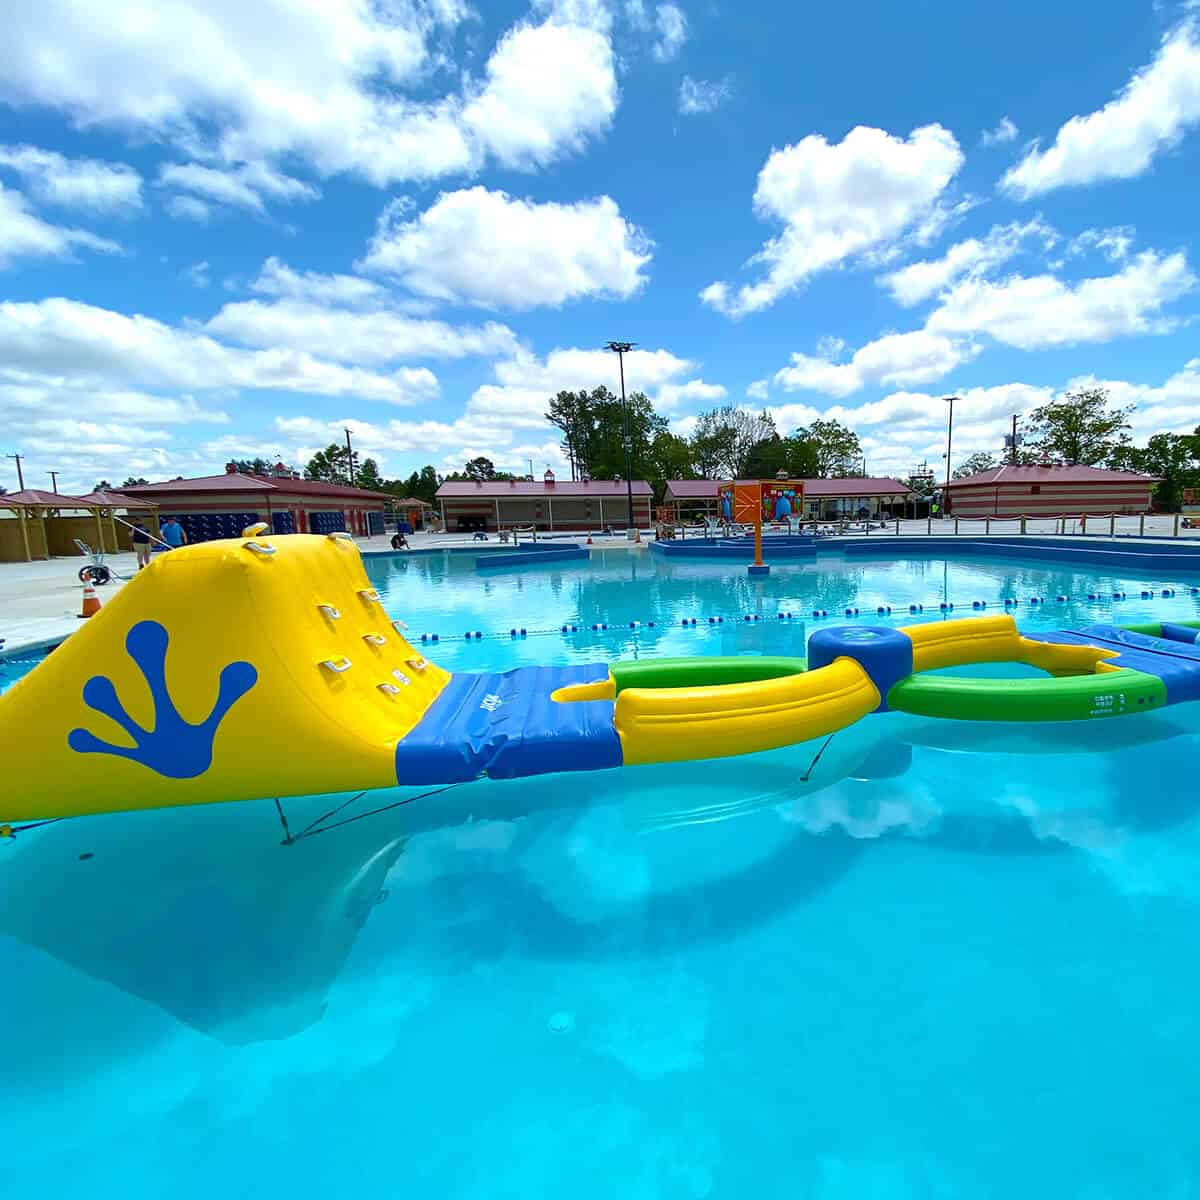 The Wibit obstacle course in The Water Main pools